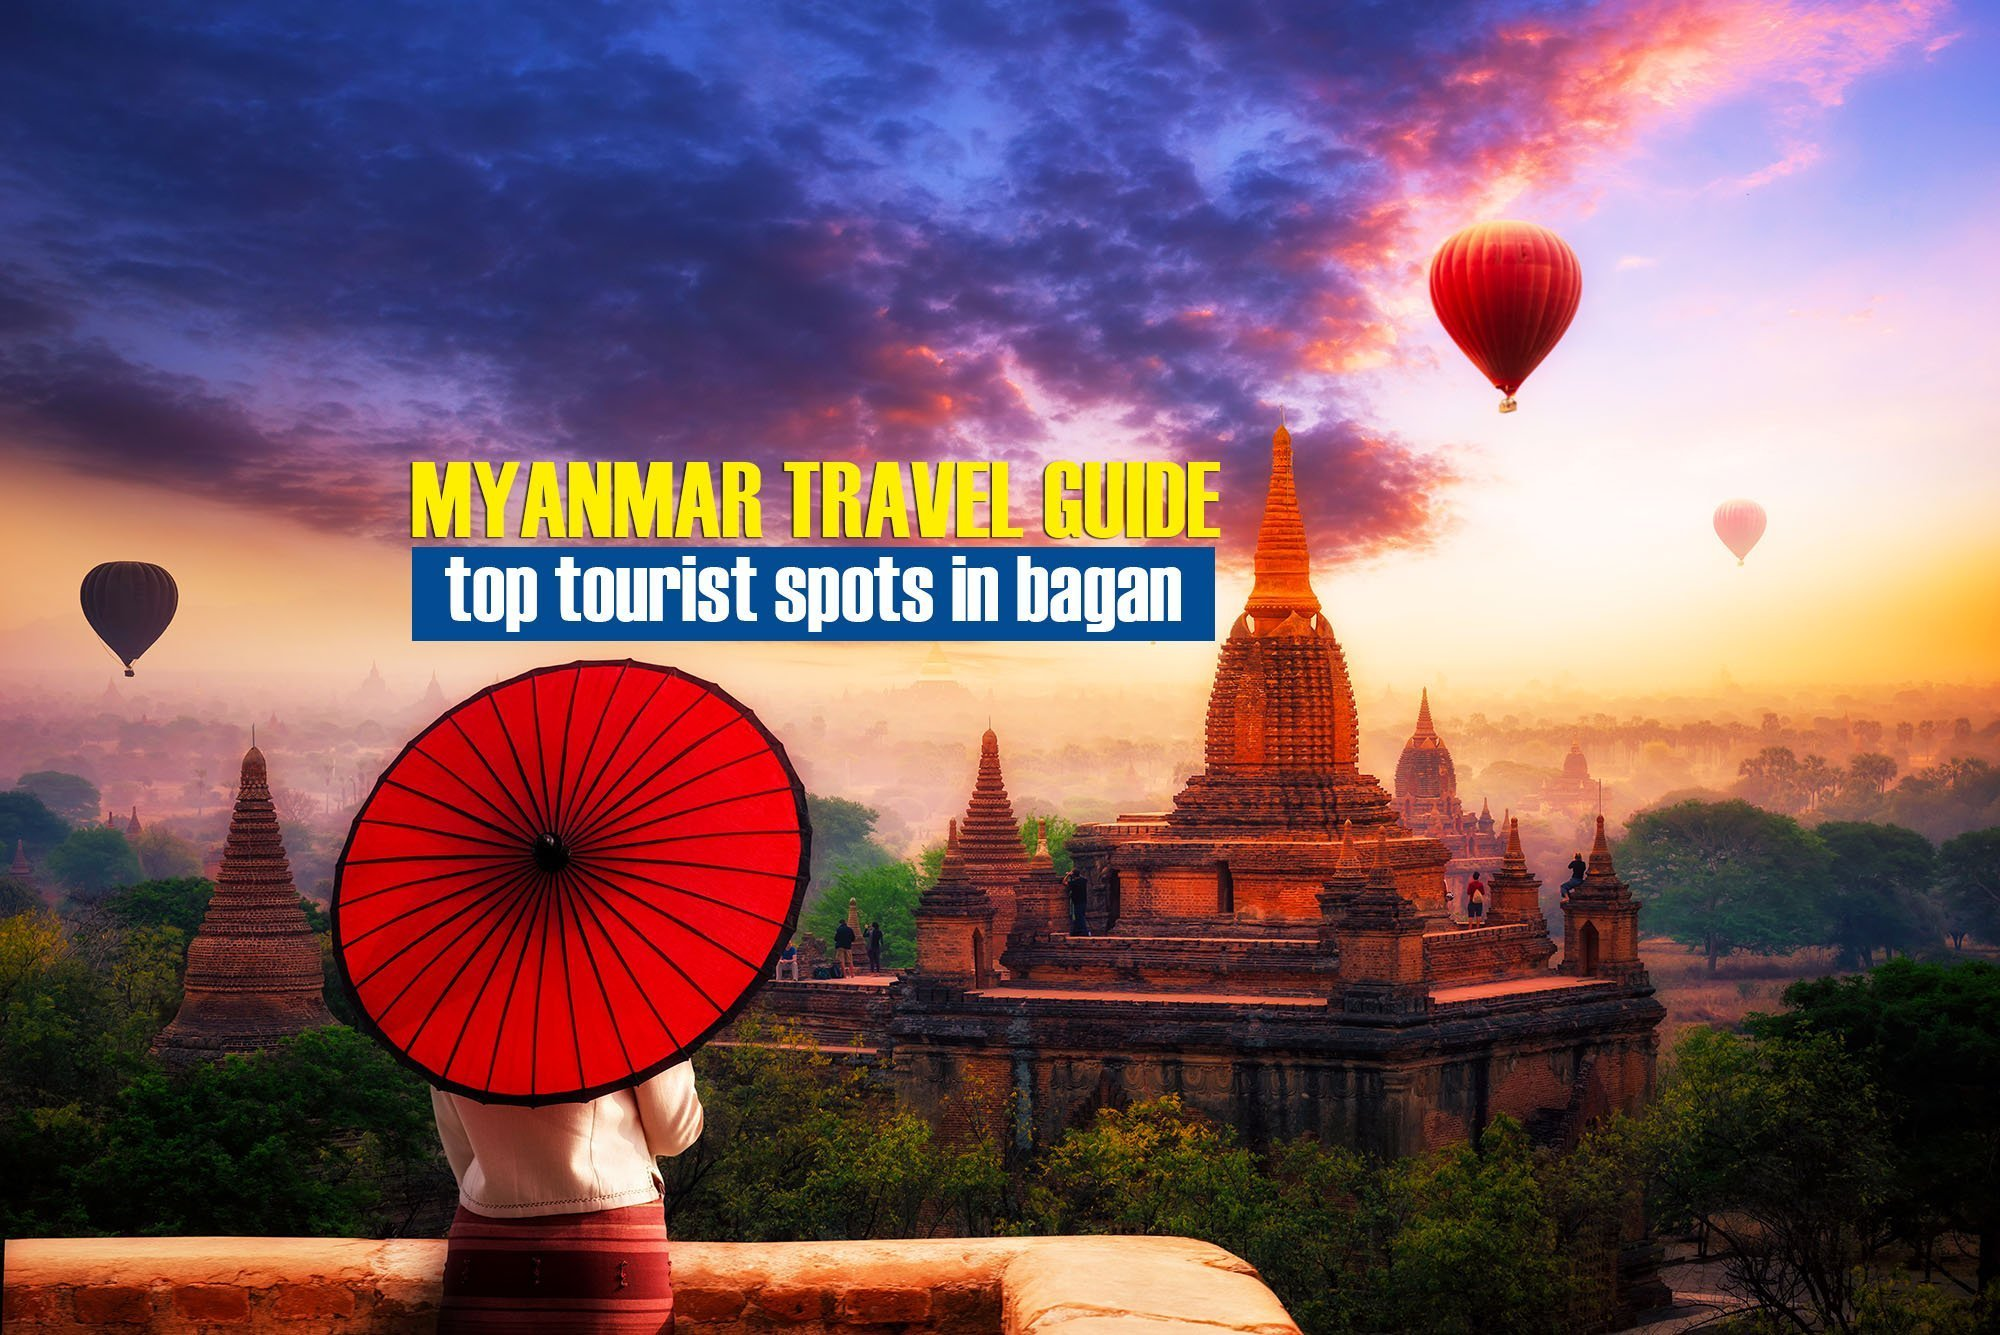 5 Top Tourist Spots in Bagan, Myanmar